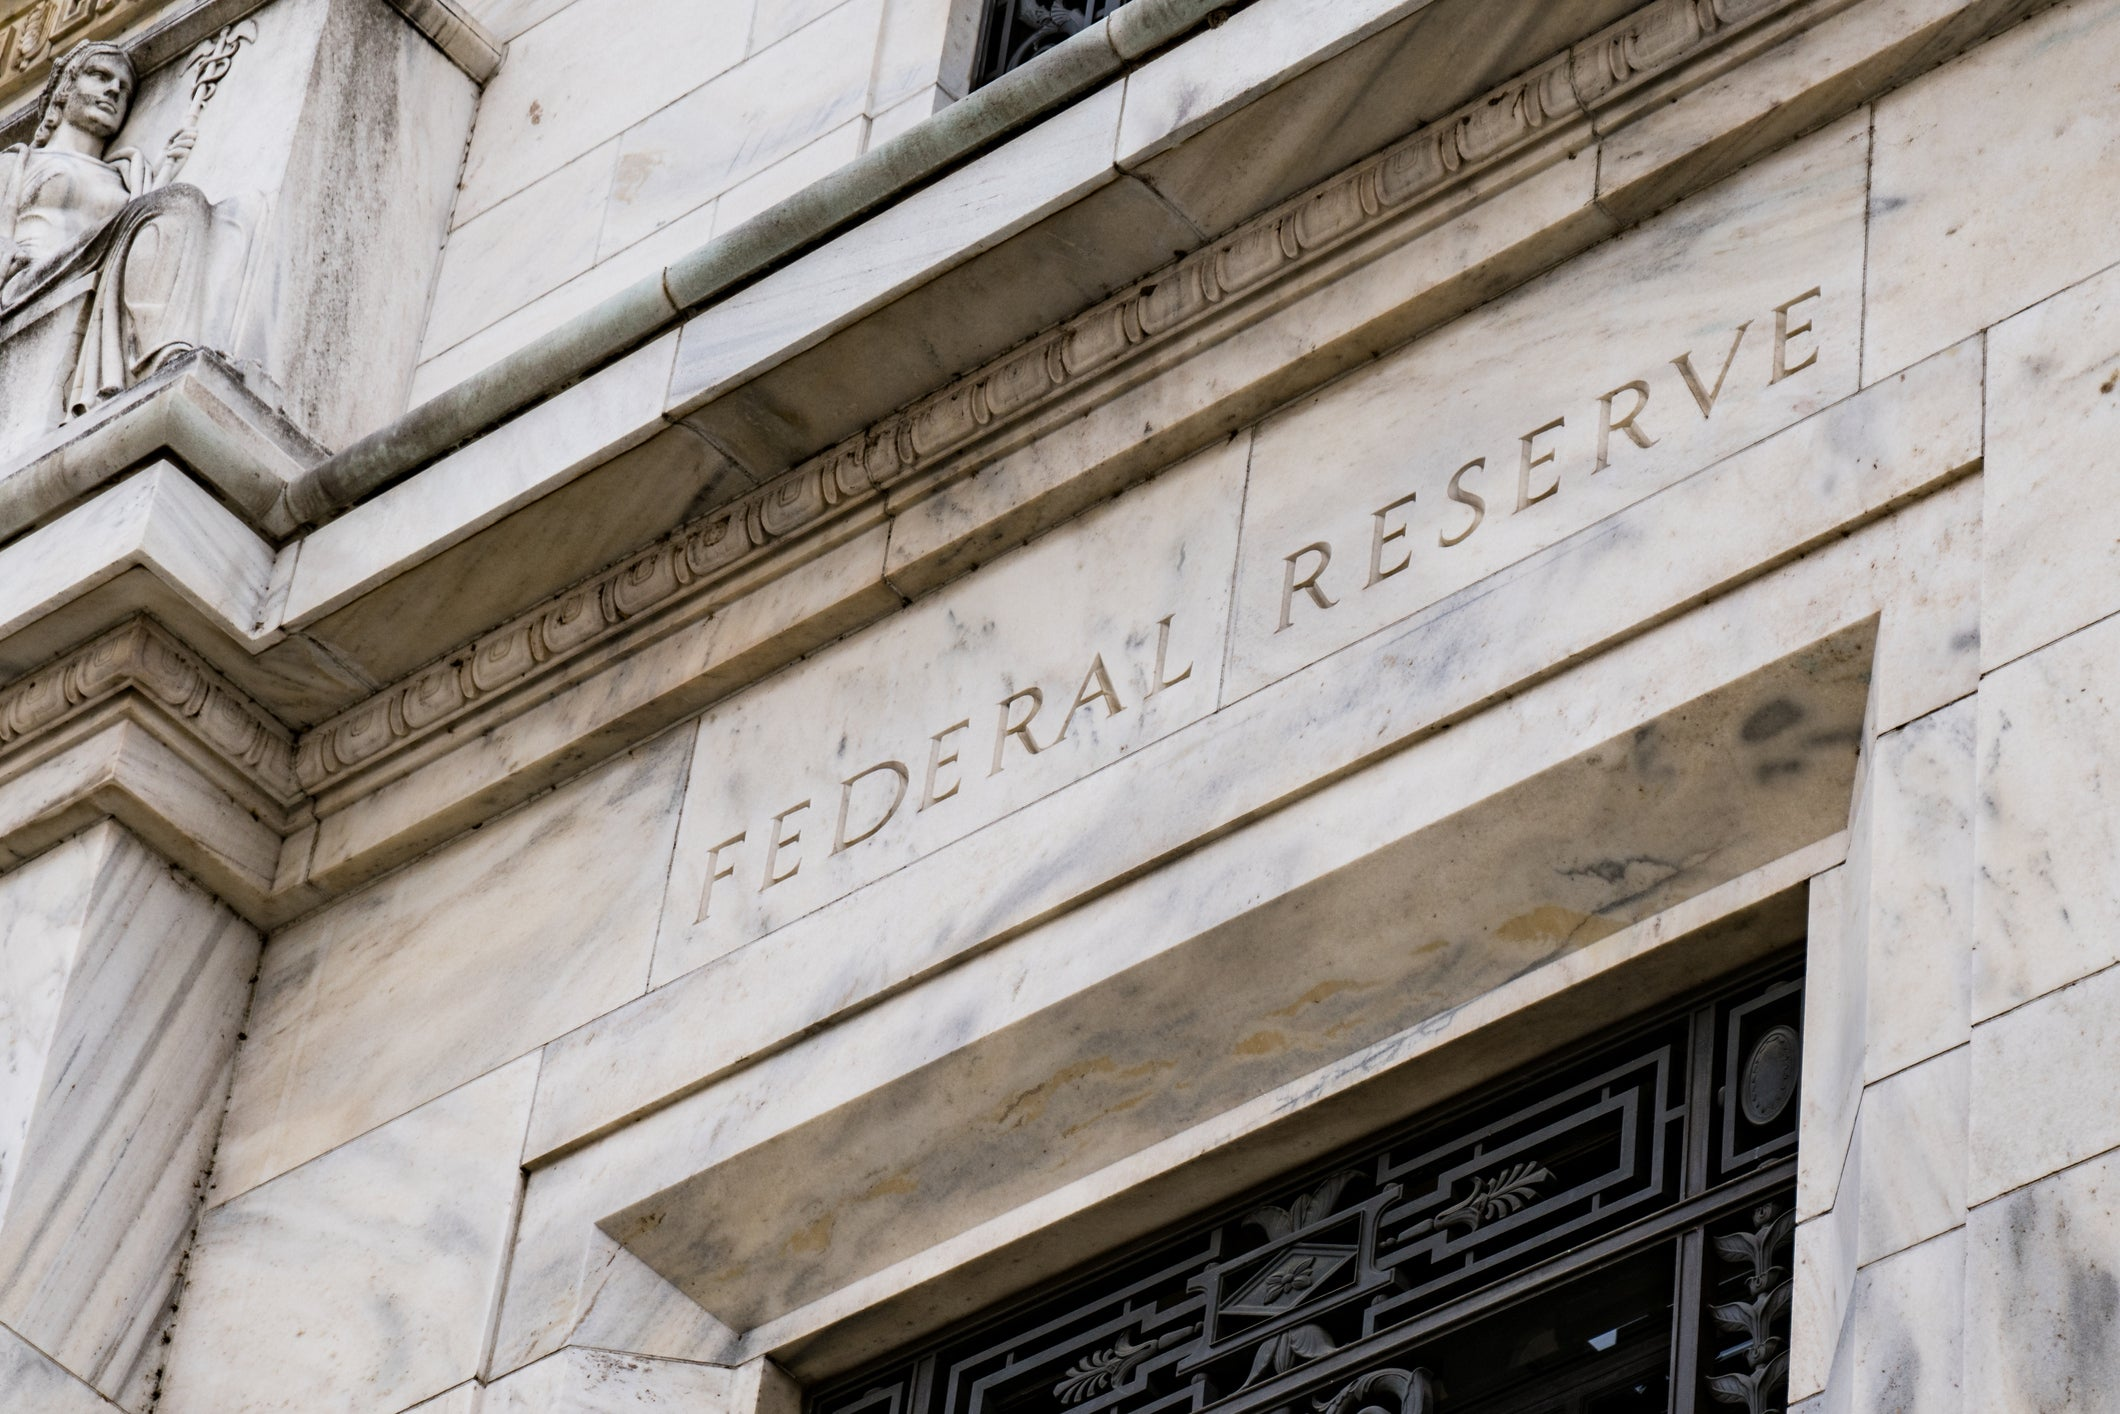 Exterior of Federal Reserve building entrance.